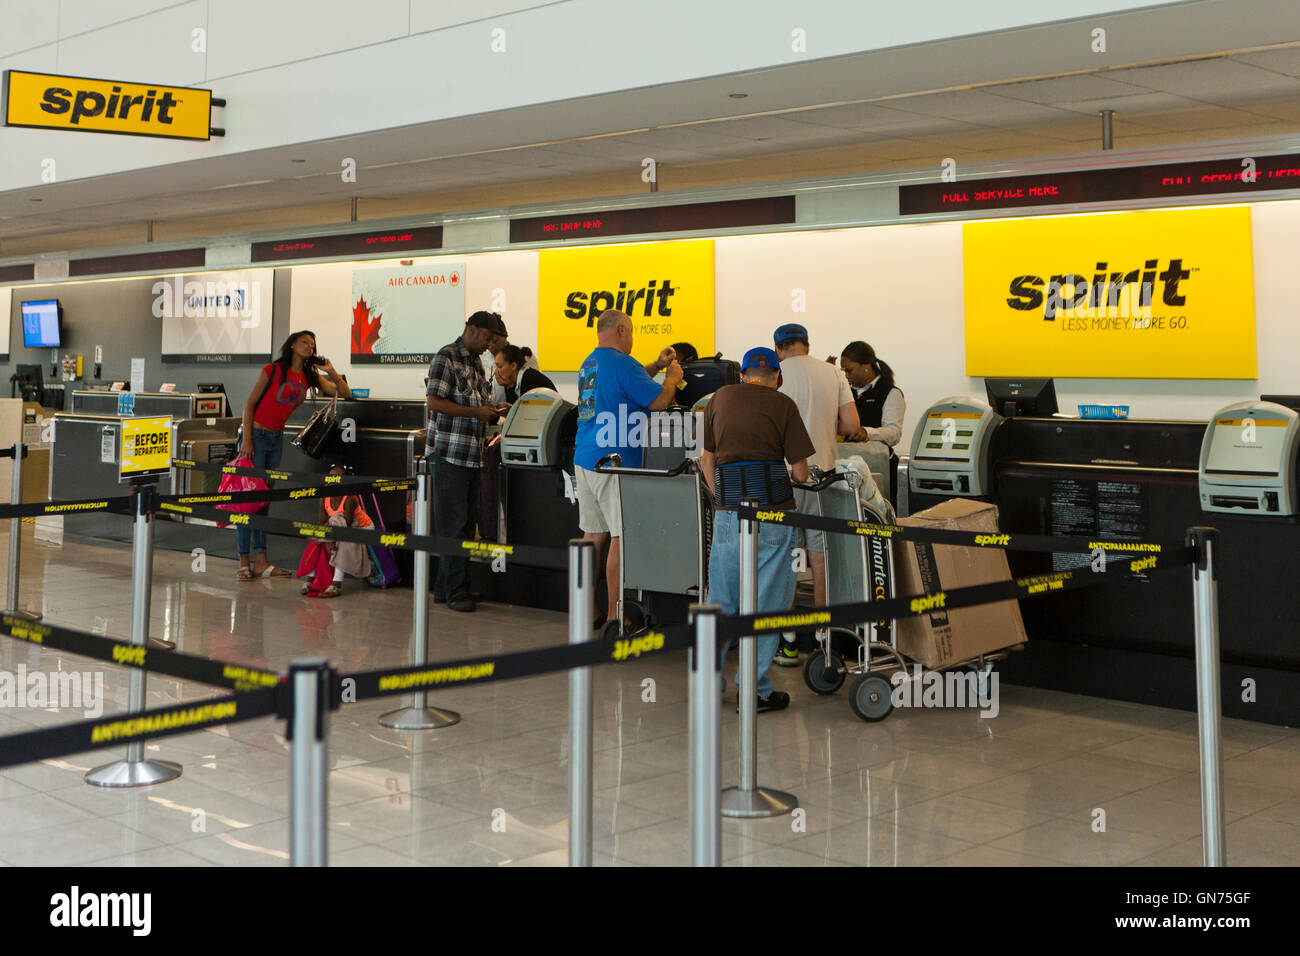 Spirit Airlines Check In >> Spirit Airlines Ticket Counter At Bwi International Airport Usa